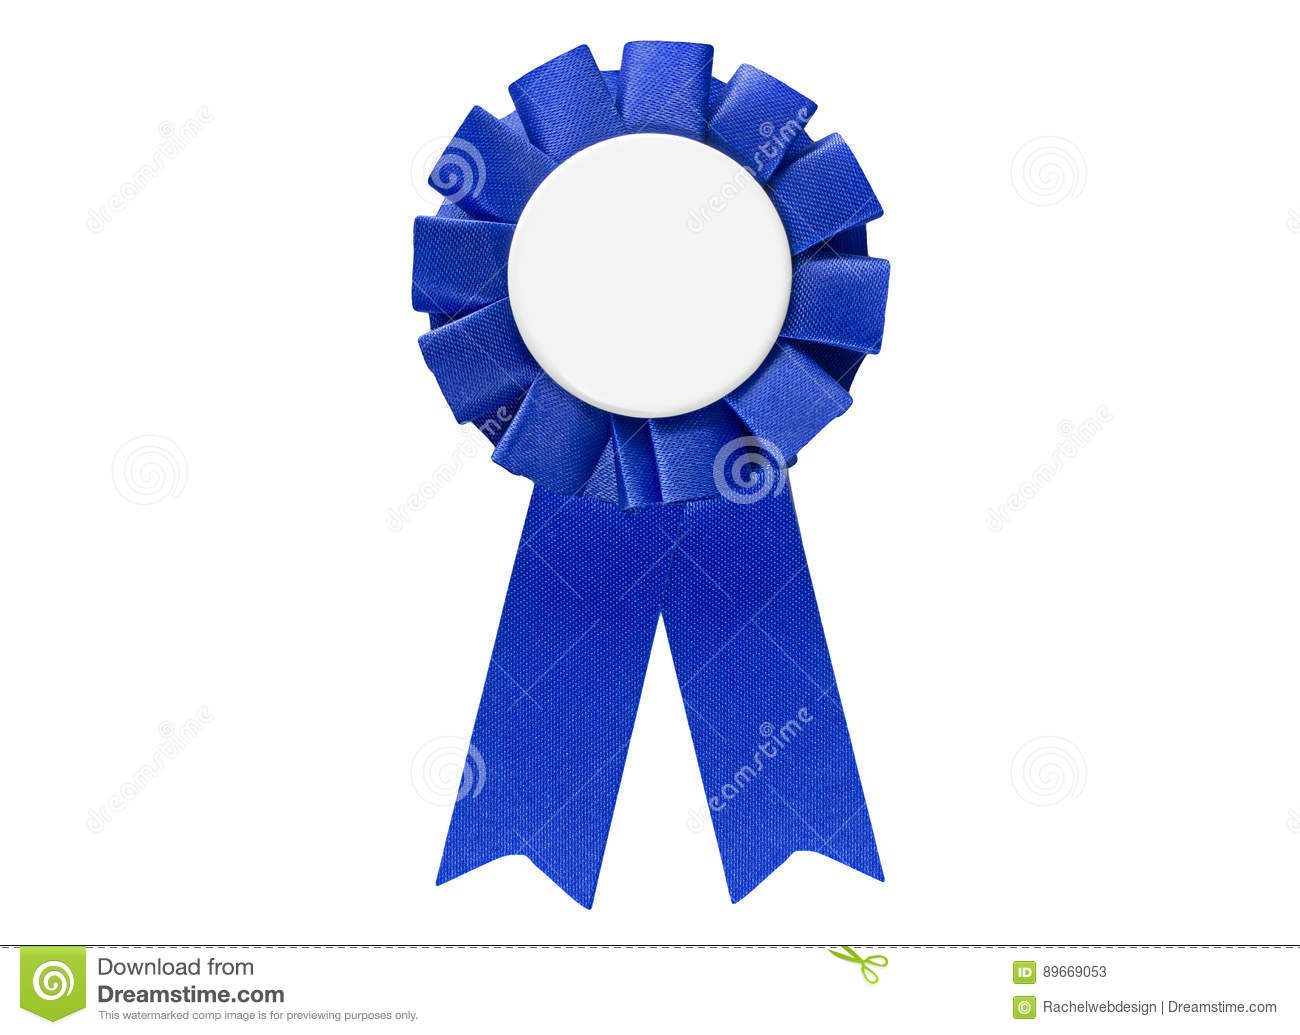 Blue ribbon award tag for sales, sports, retail to display best